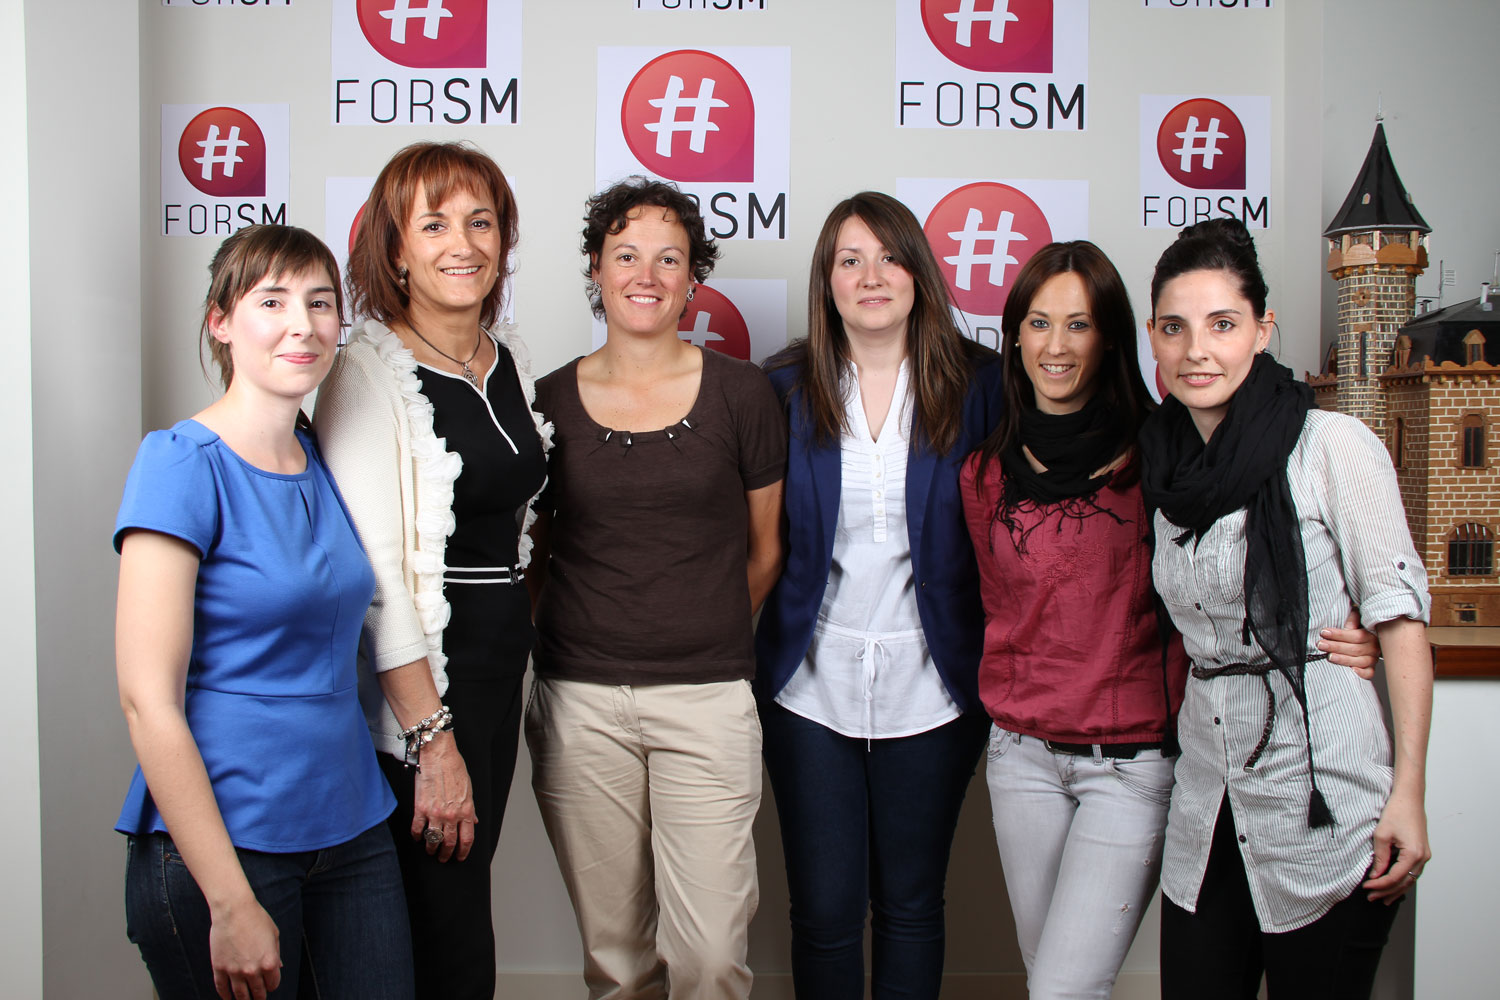 chicas-forsm